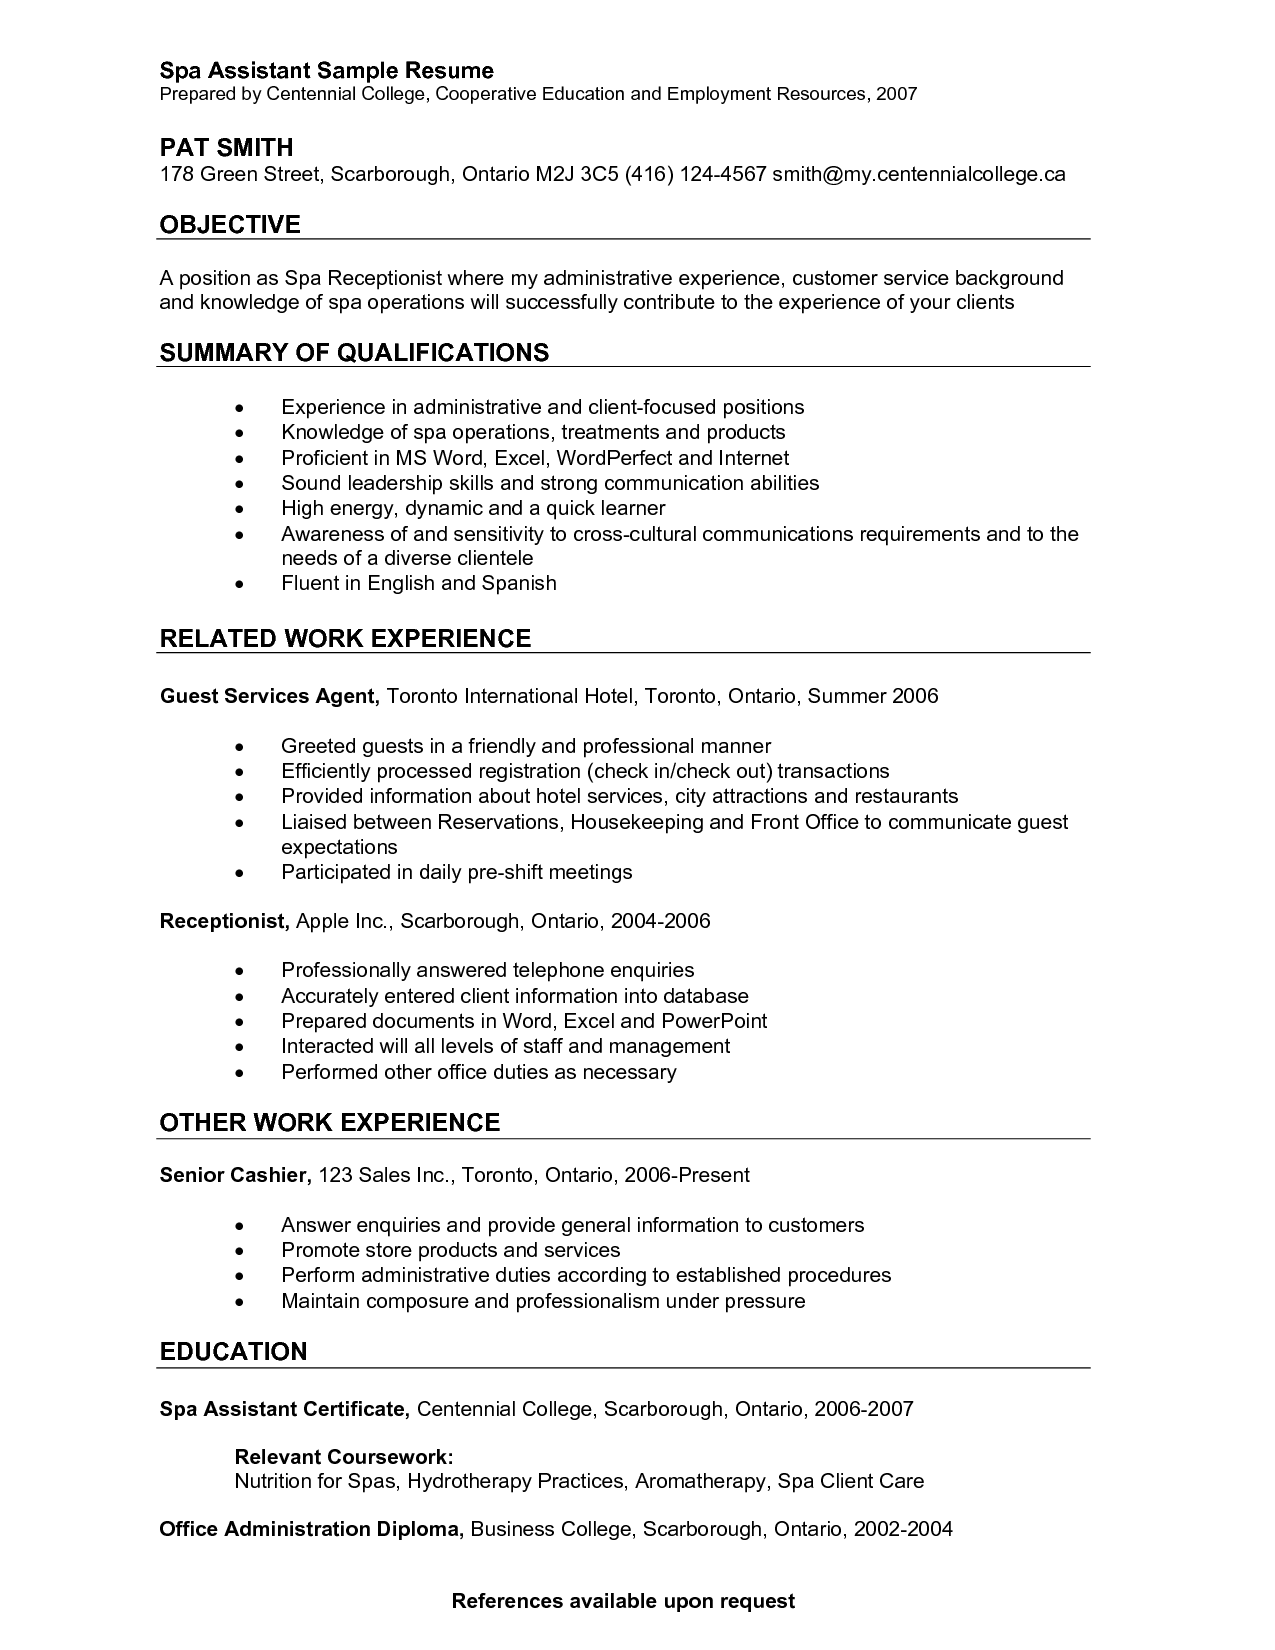 Resume For Concierge Personal Istant Sample Best Spa Job  Spa Receptionist Resume